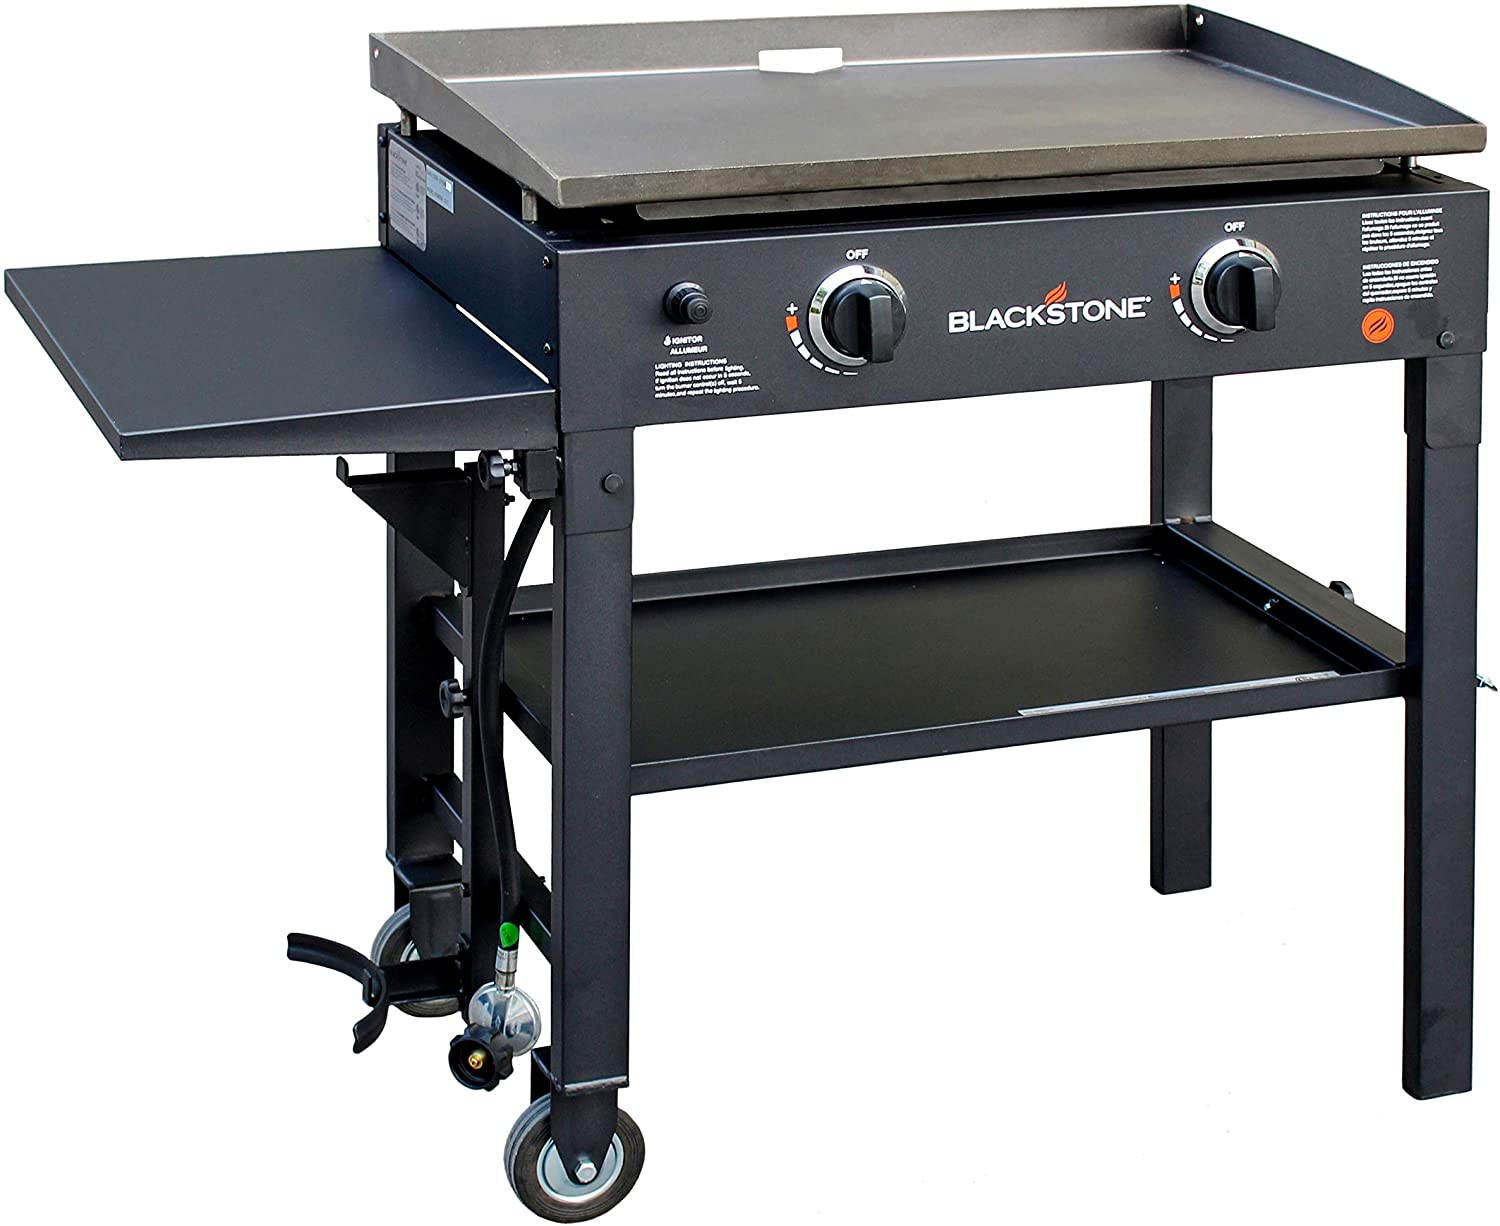 Blackstone Outdoor Flat Top 2-Burner Propane Fueled Gas Griddle